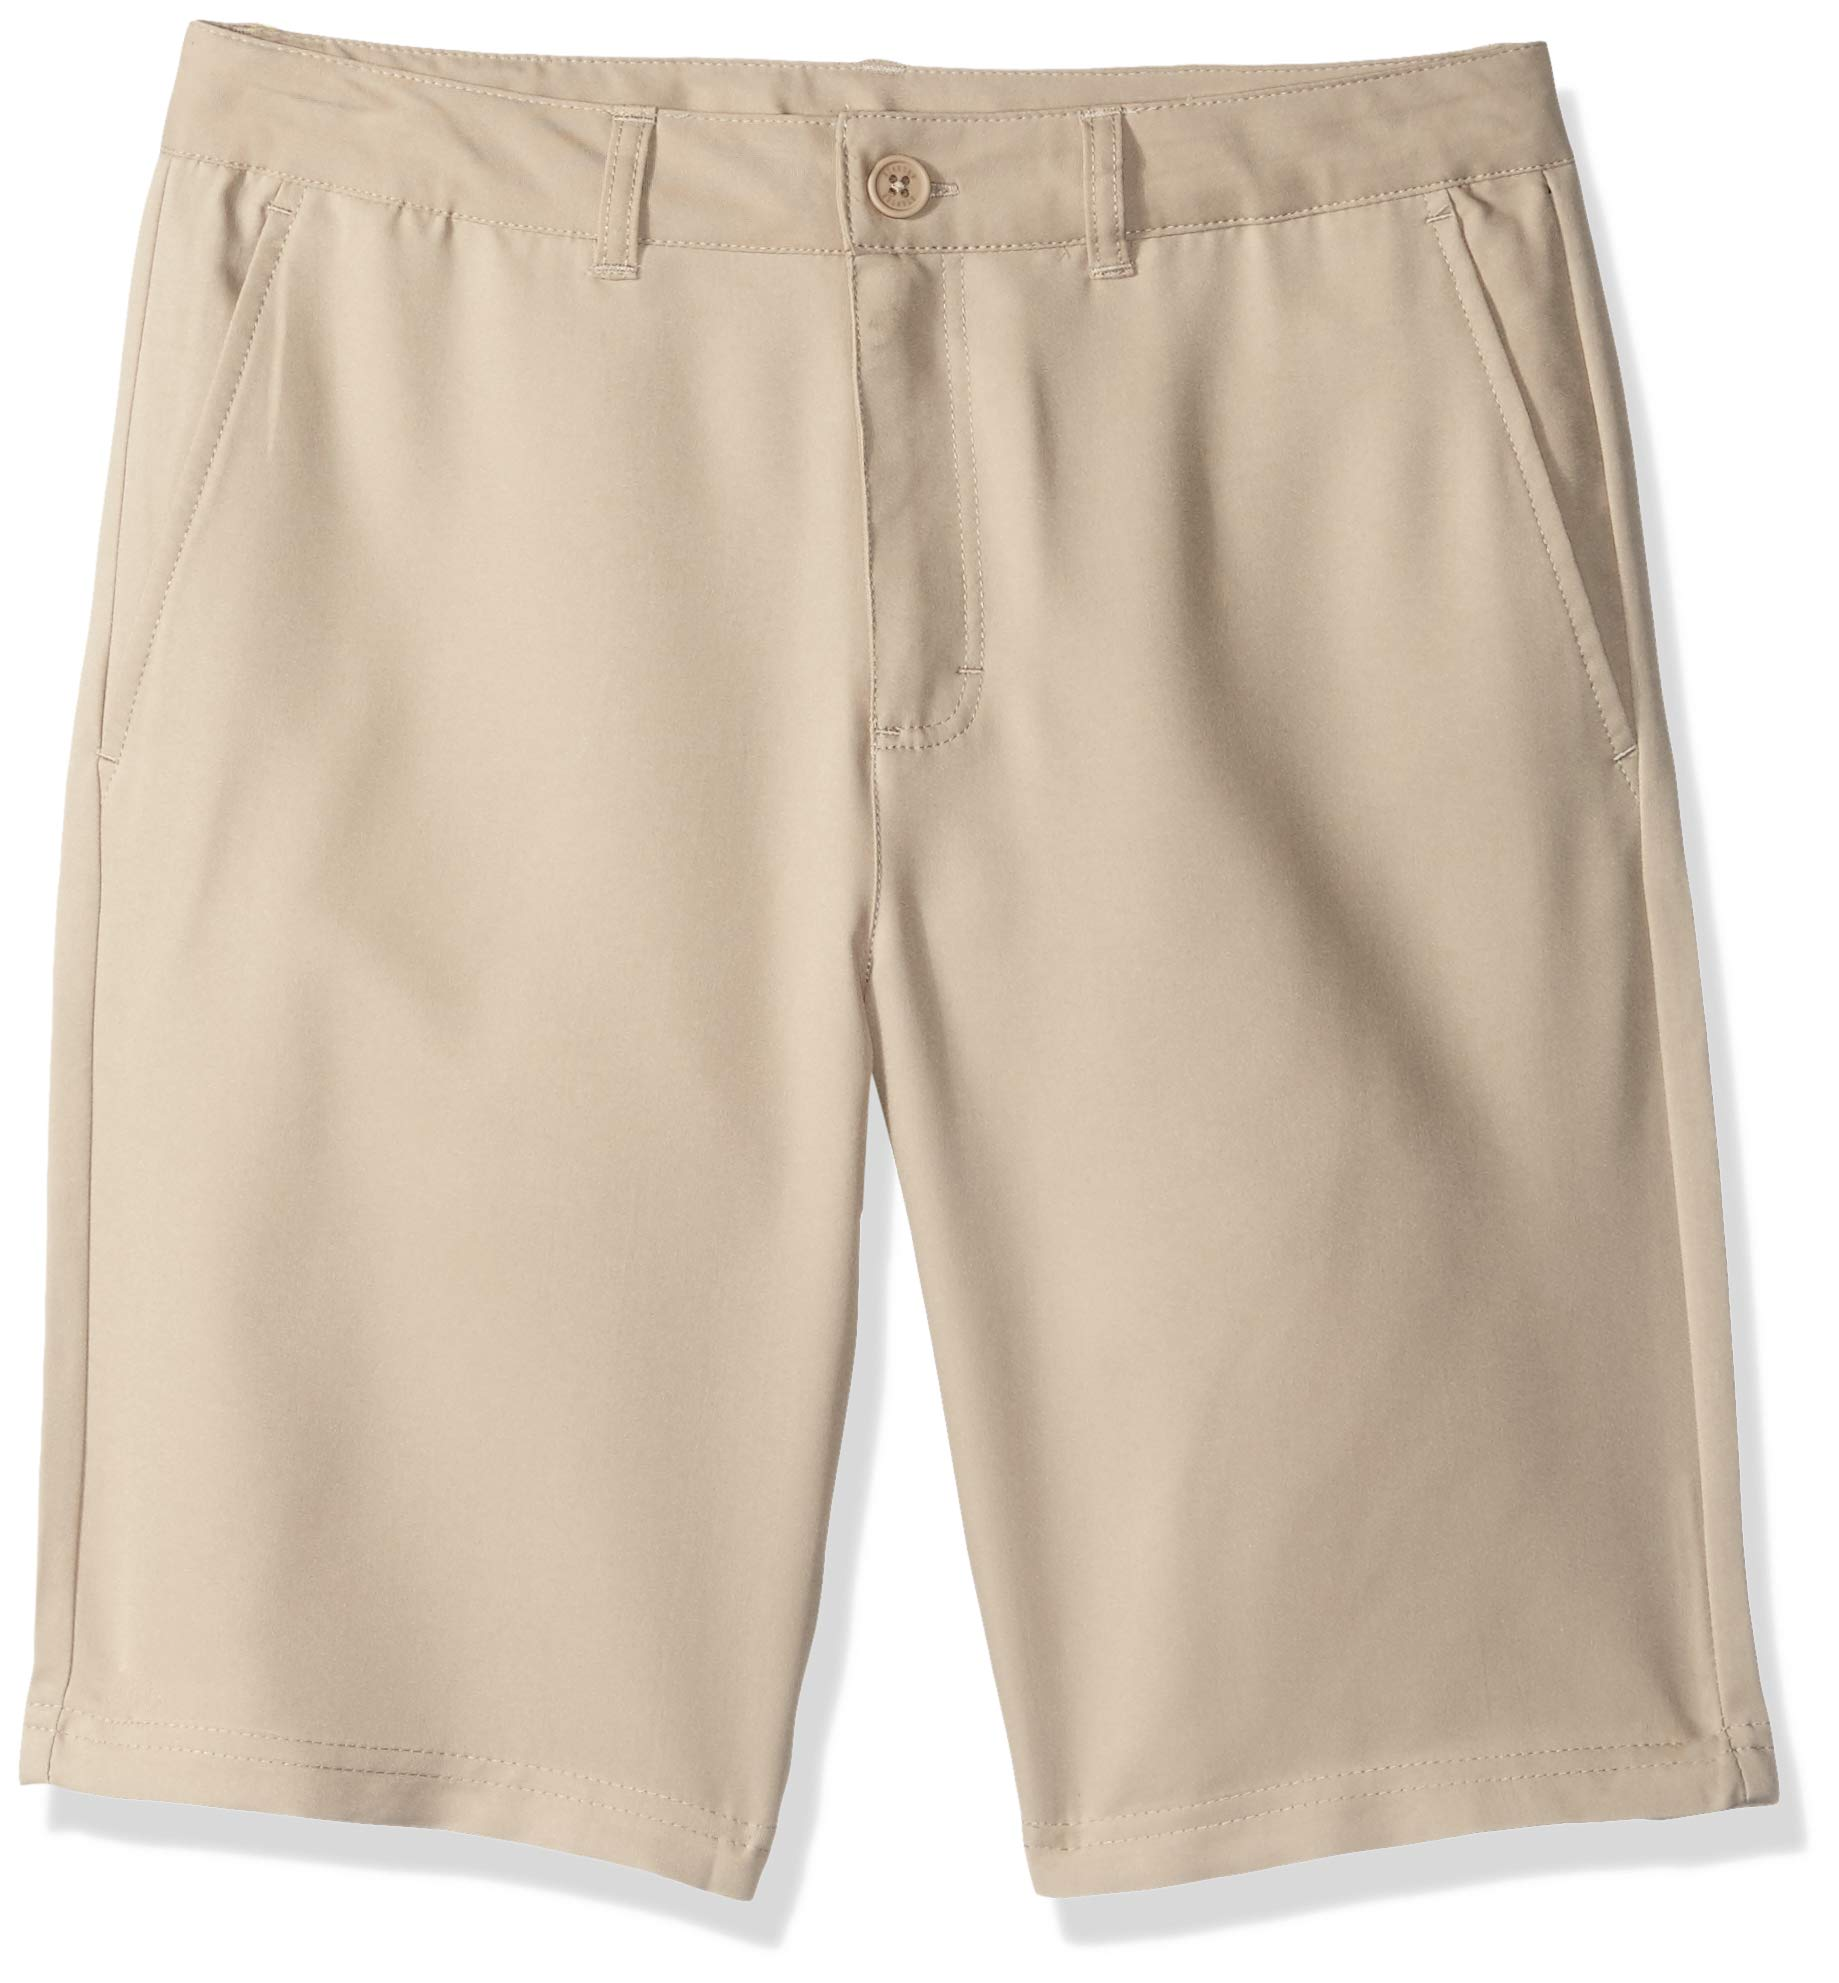 Starter Boys' 9'' Golf Club Shorts with Pockets, Khaki, L (12/14) by Starter